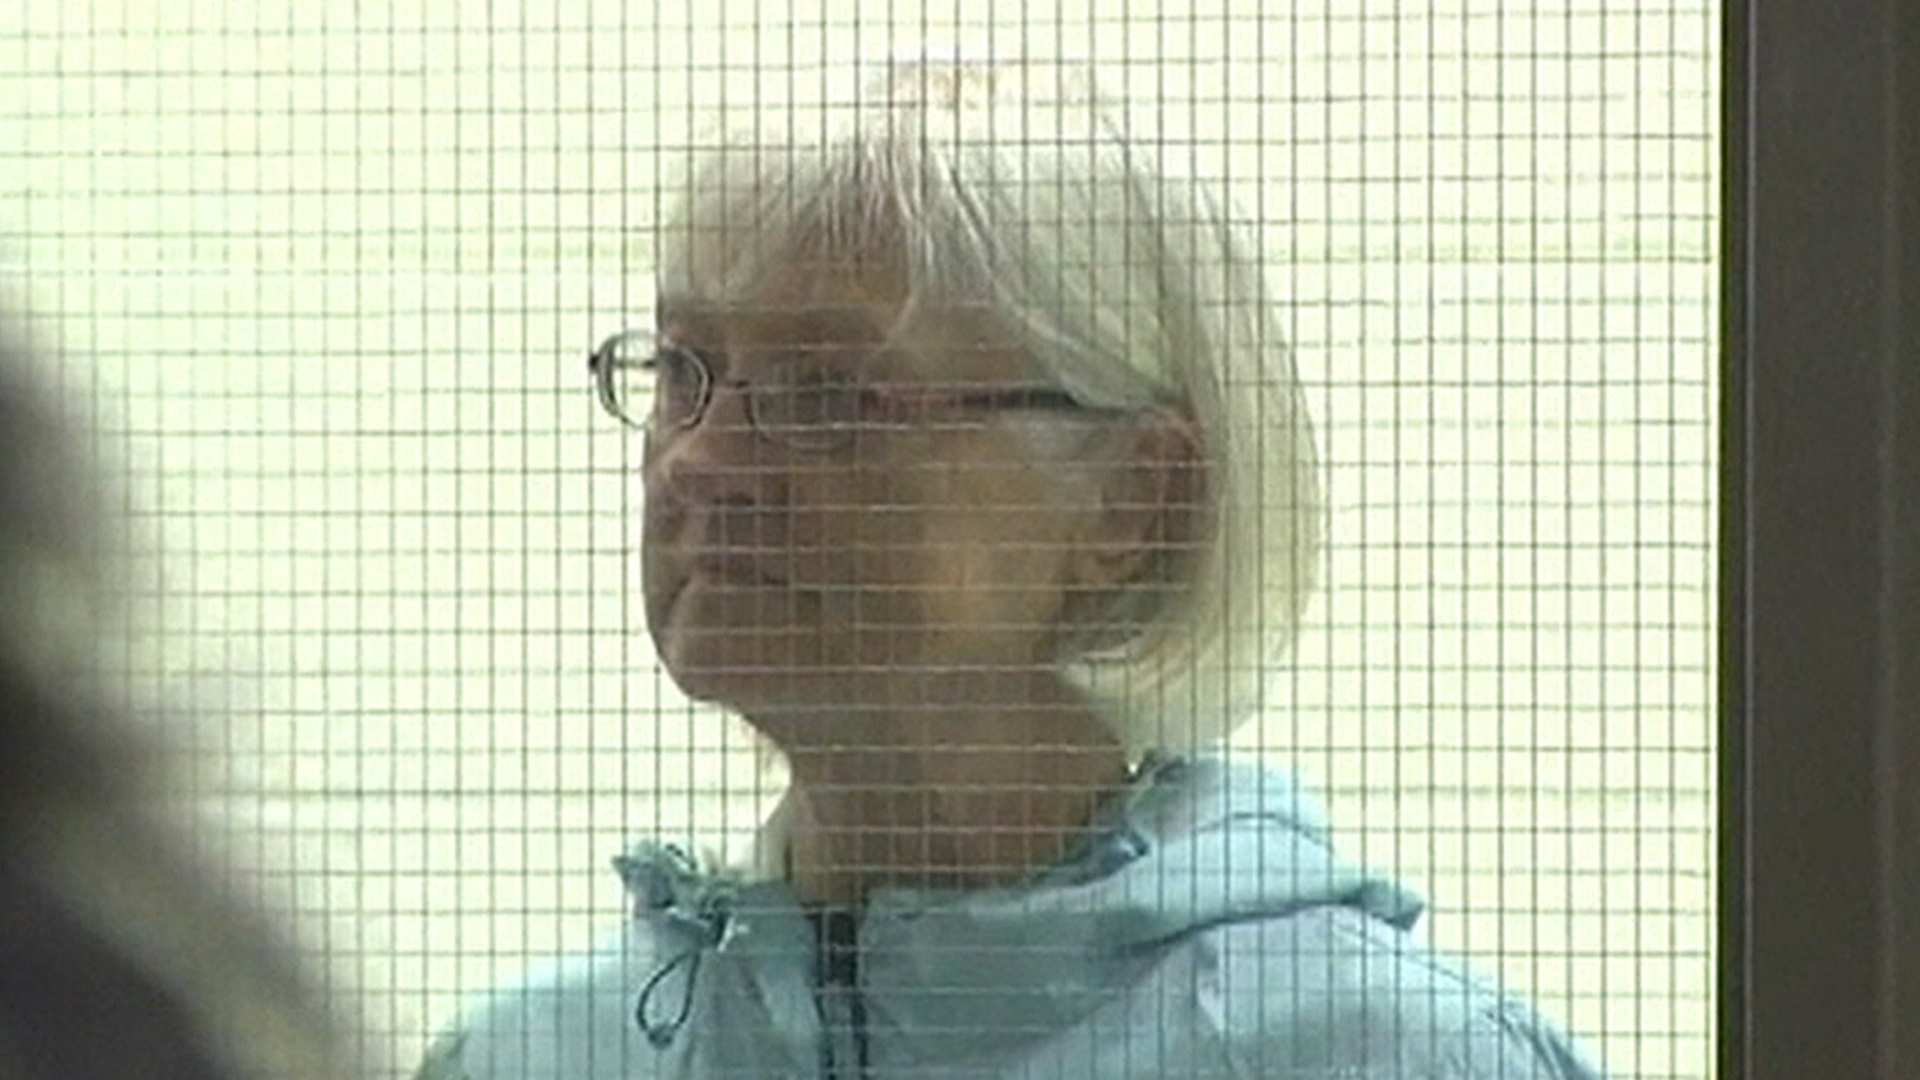 'Serial Stowaway' Marilyn Hartman Arrested Again, This Time in Florida